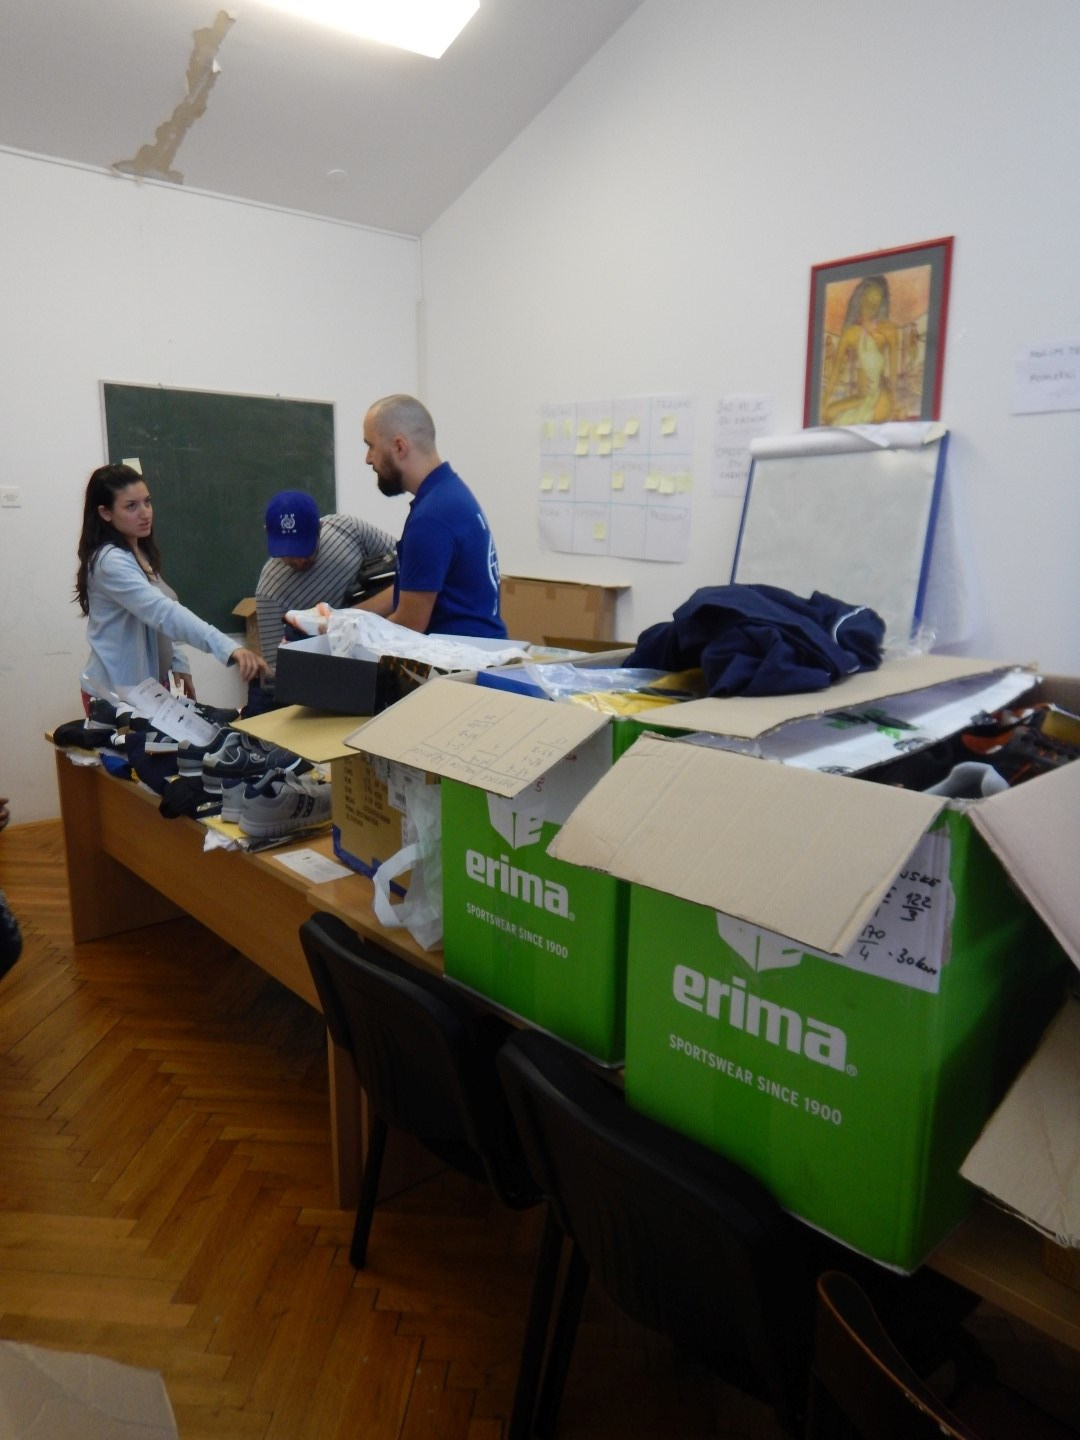 EUROPE / MEDITERRANEAN MIGRATION RESPONSE IOM Response Situation Report 11 Aug 2016 Croatia IOM continues to deliver English and Croatian language classes for migrants and asylum seekers.